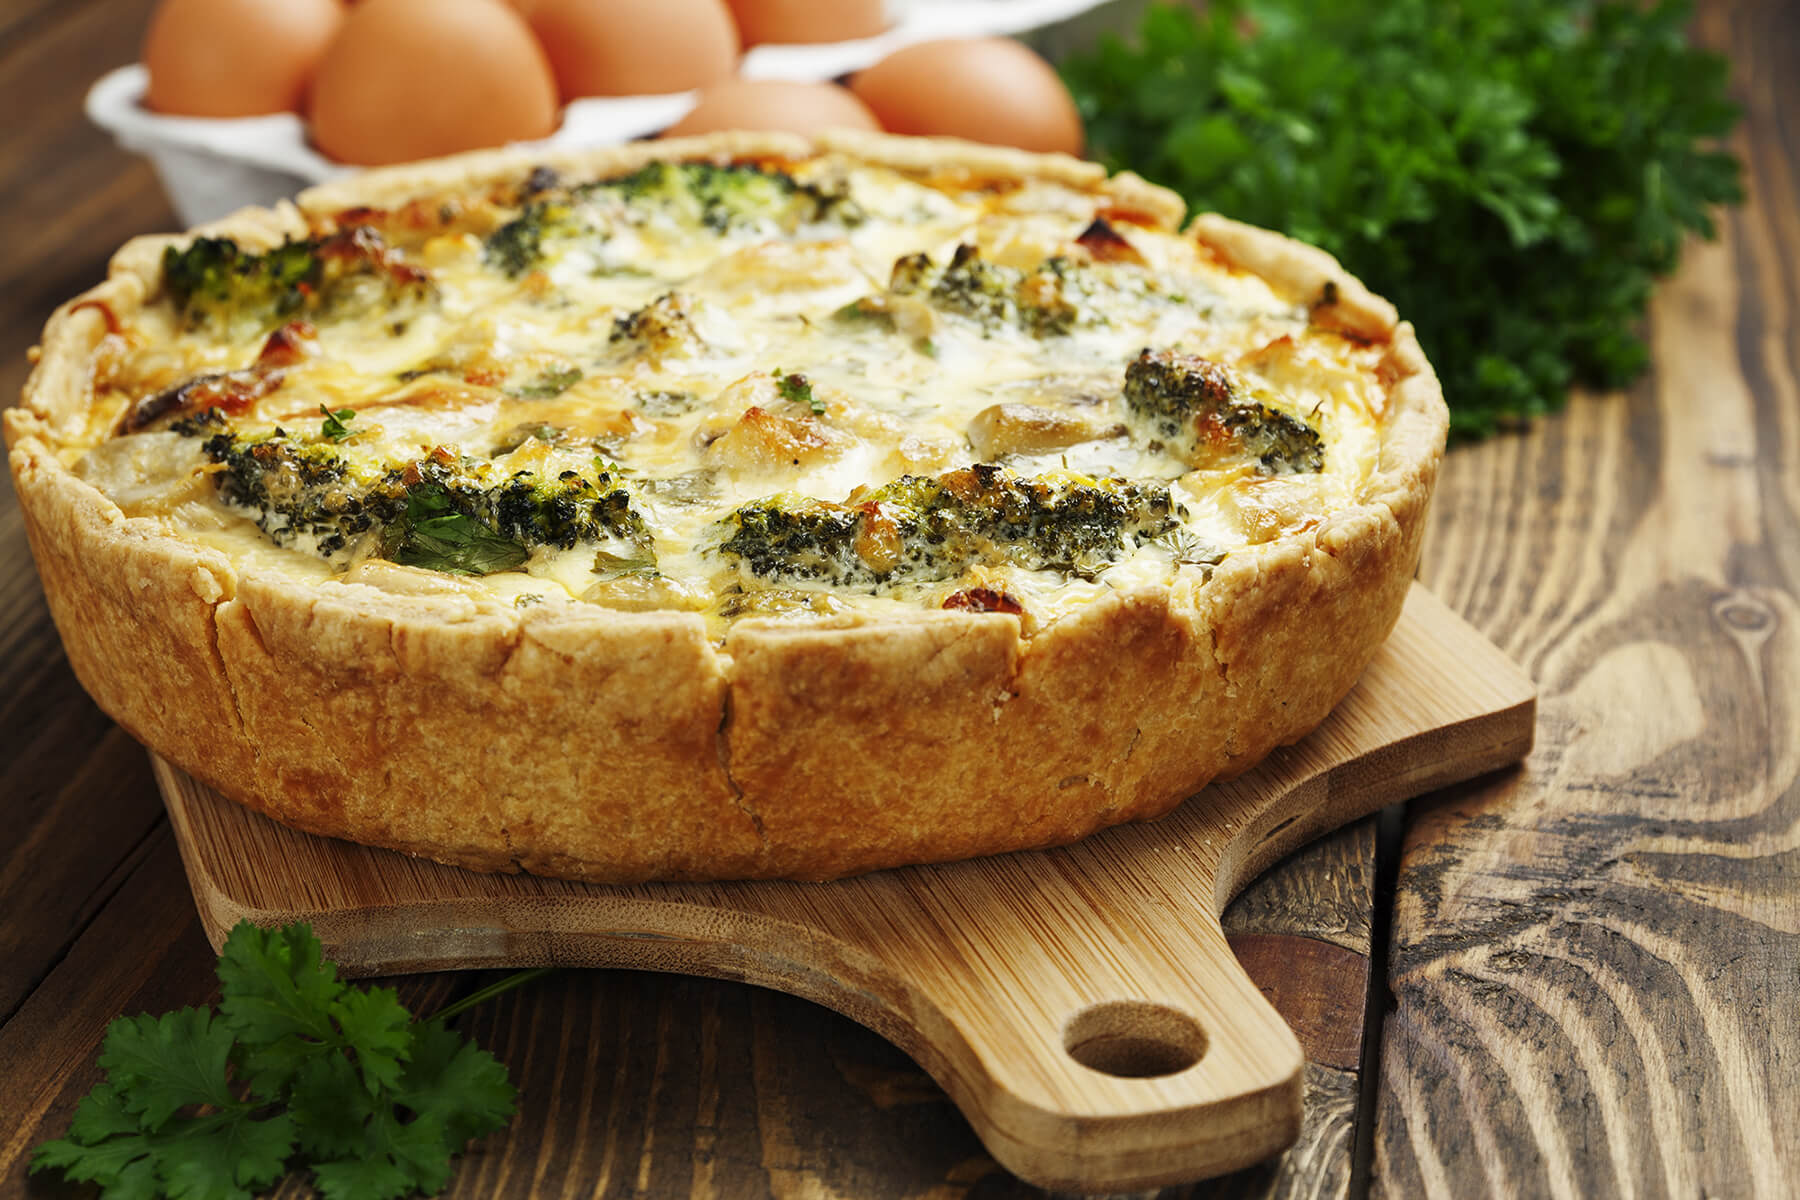 quiche Lorraine with chicken, mushrooms and broccoli on the table